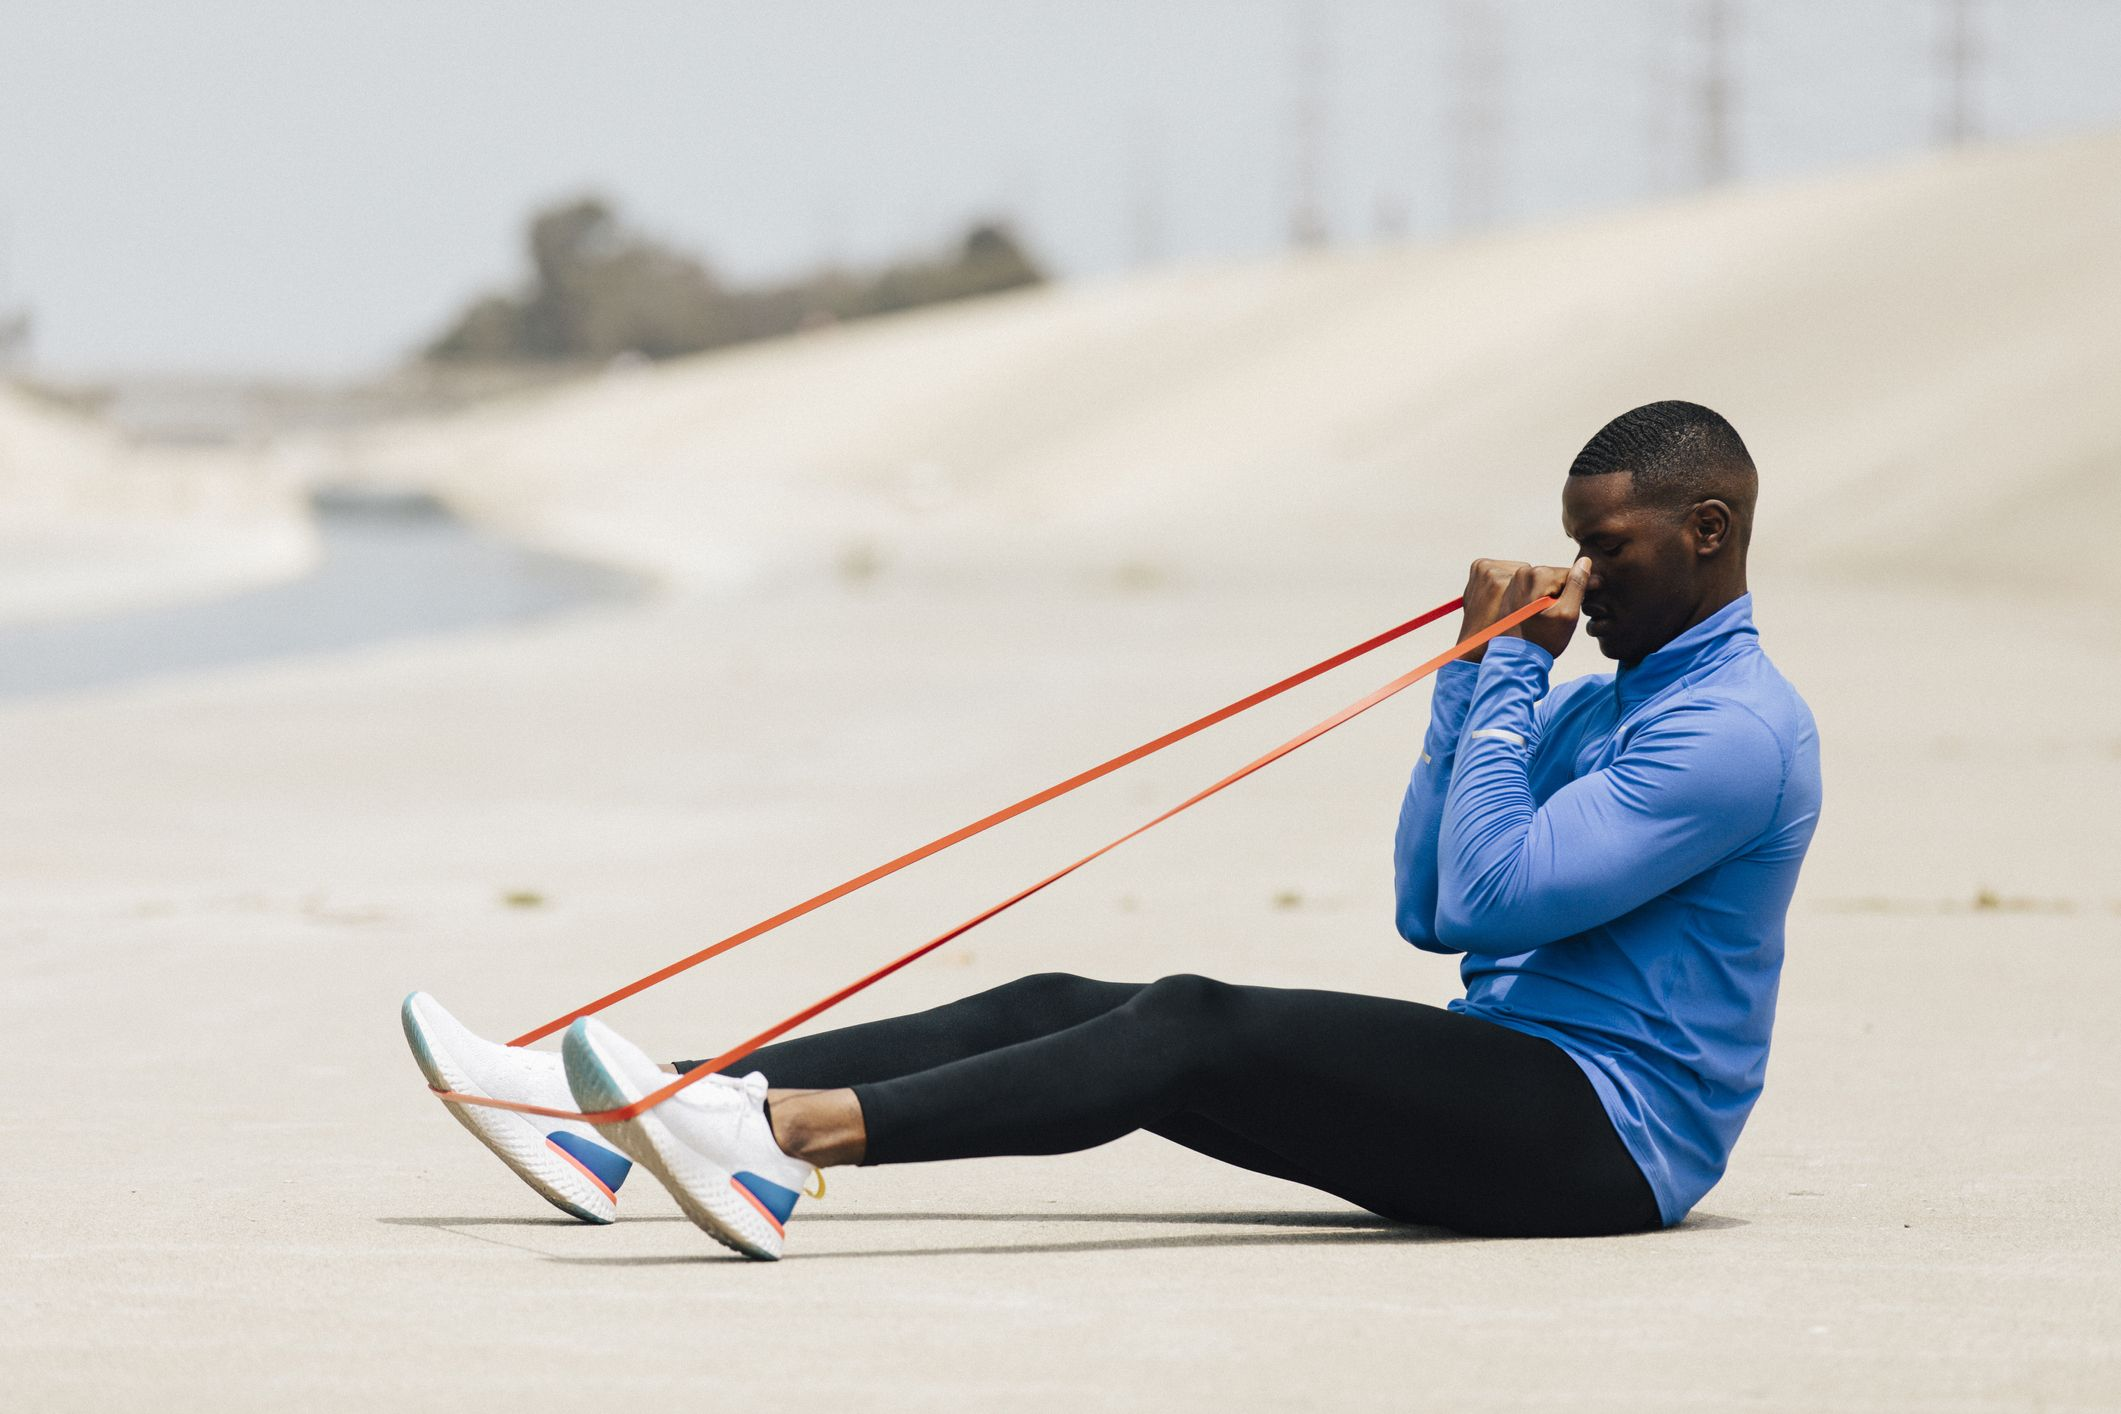 Side view of man stretching resistance band while sitting on land during sunny day